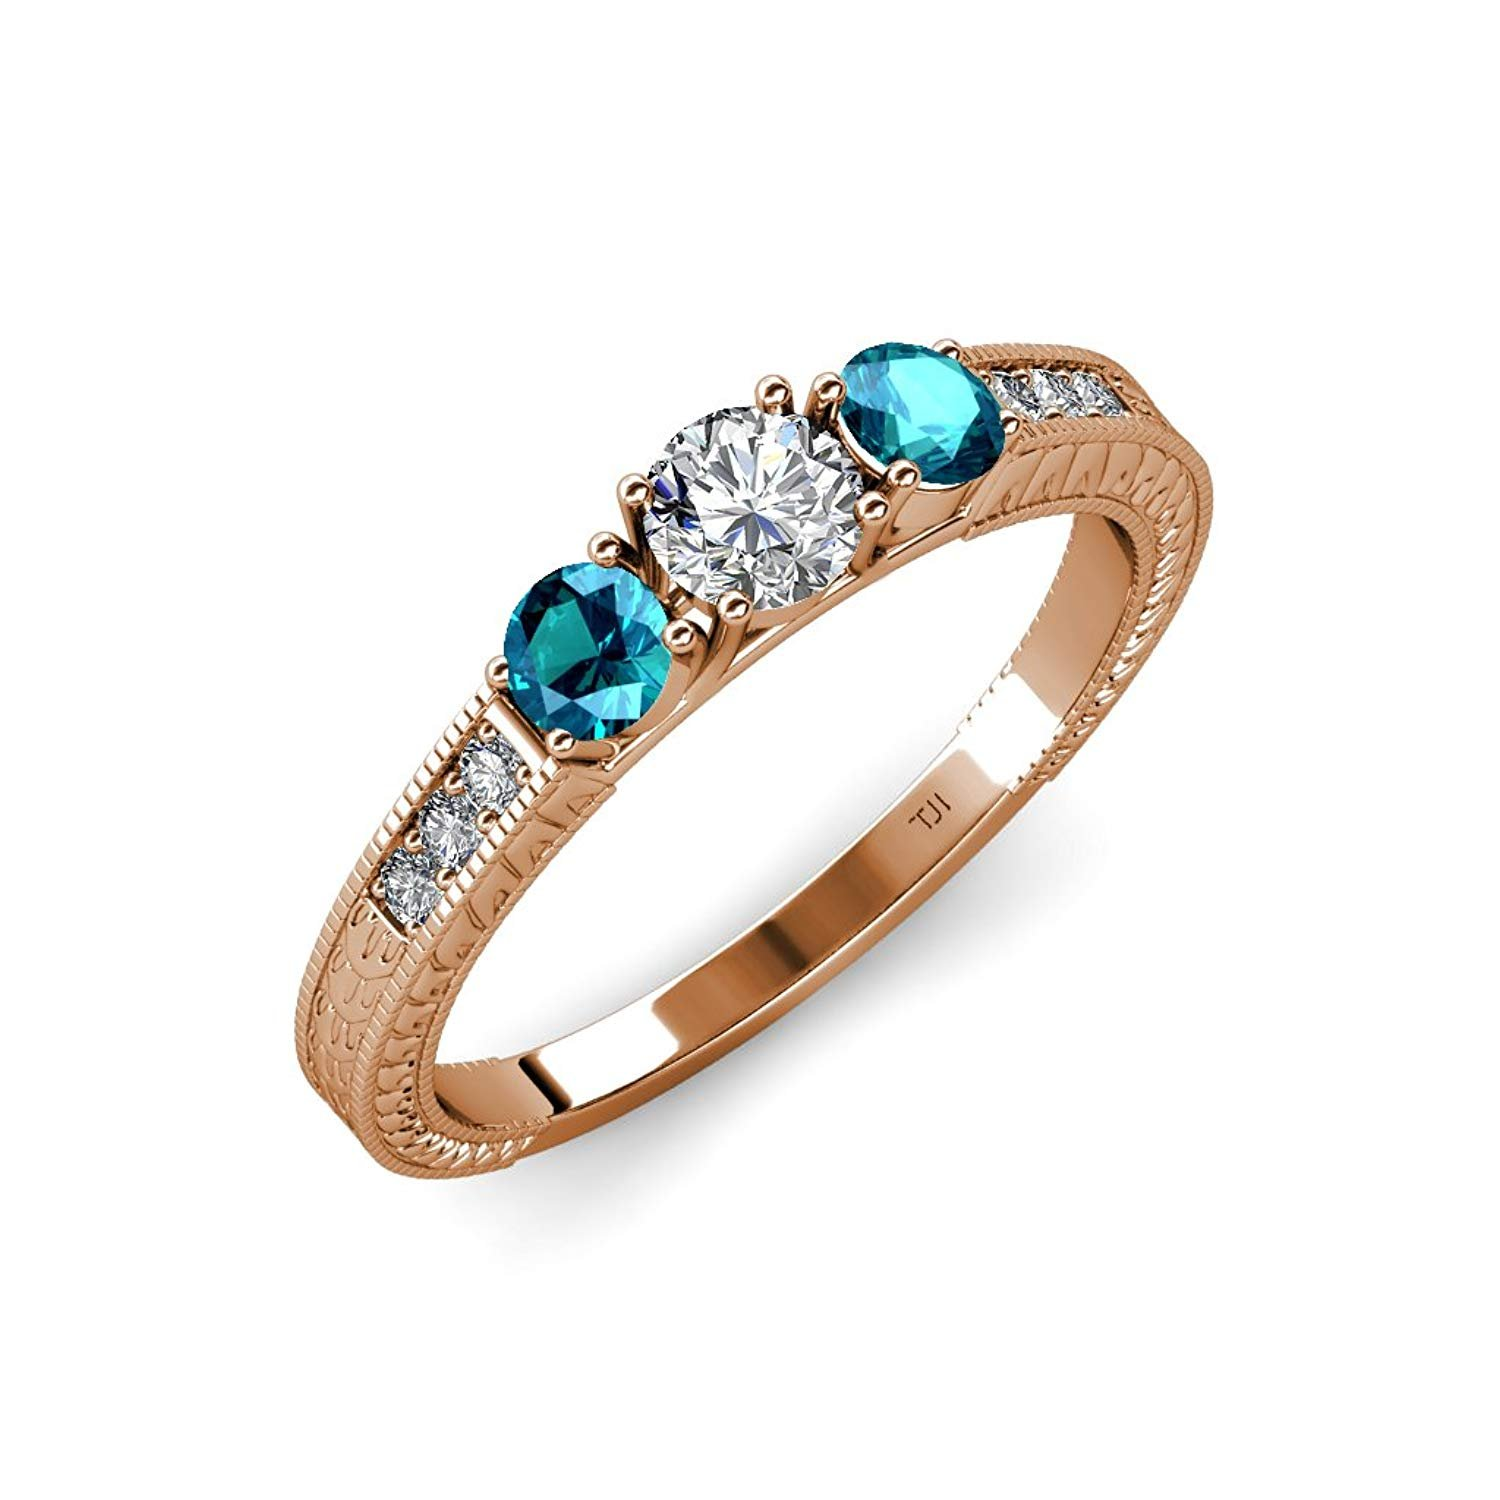 Diamond and London Blue Topaz Milgrain Work 3 Stone Ring with Side Diamond 0.85 ct tw 14K Rose Gold.size 8.5 by TriJewels